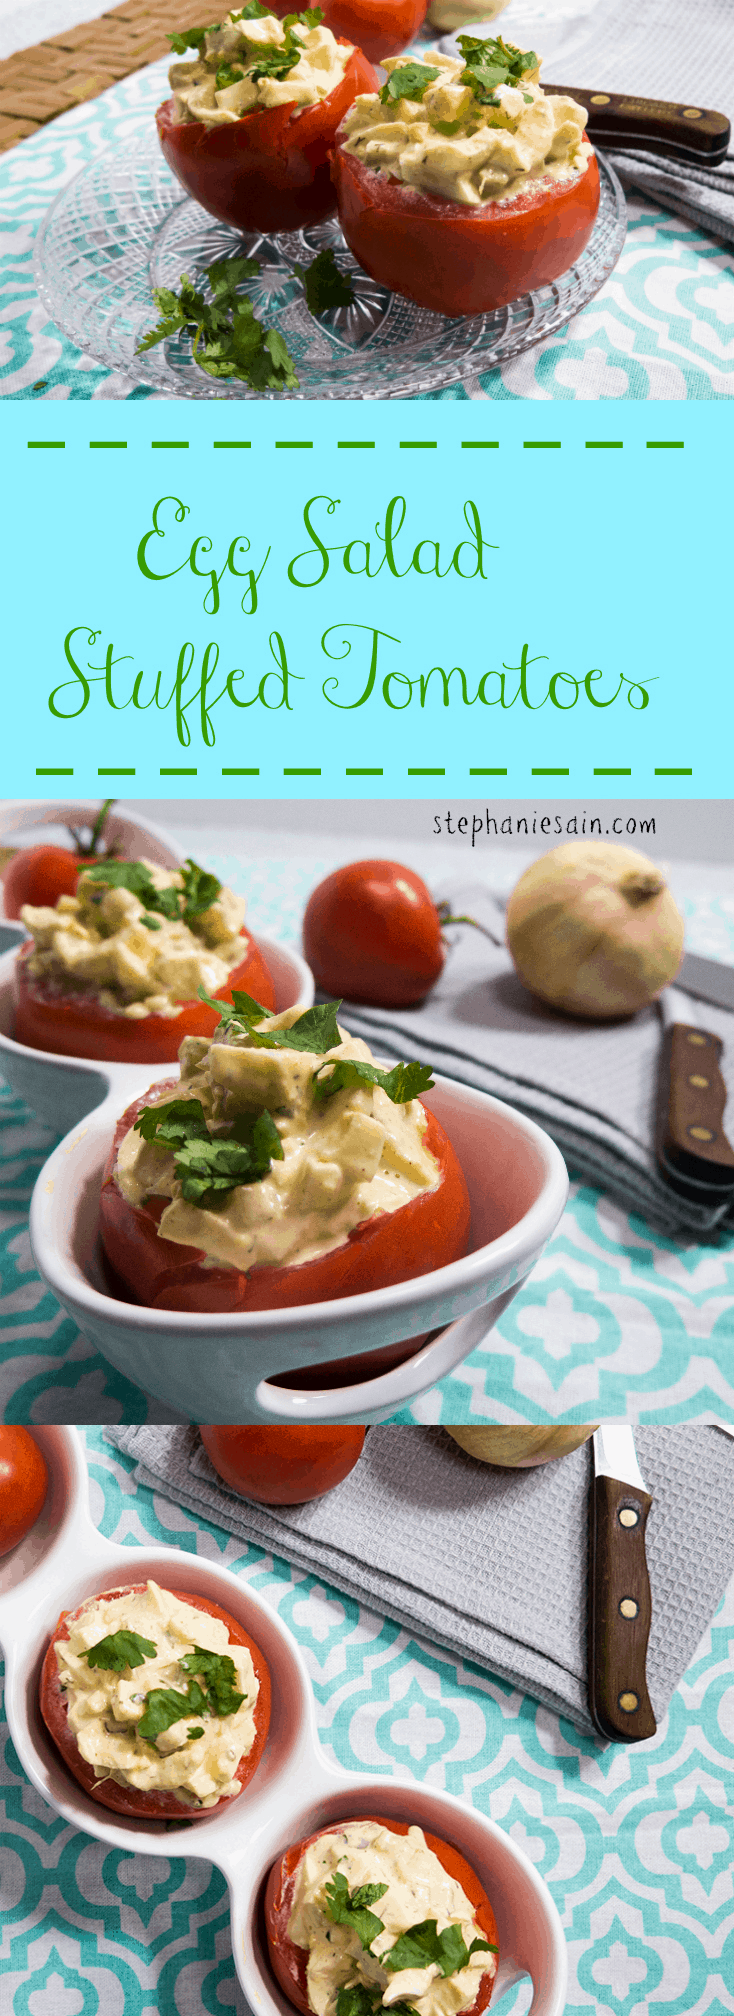 Egg Salad Stuffed Tomatoes make the perfect light lunch or dinner. It's a healthy quick meal that's low in carbs, vegetarian, and gluten free.